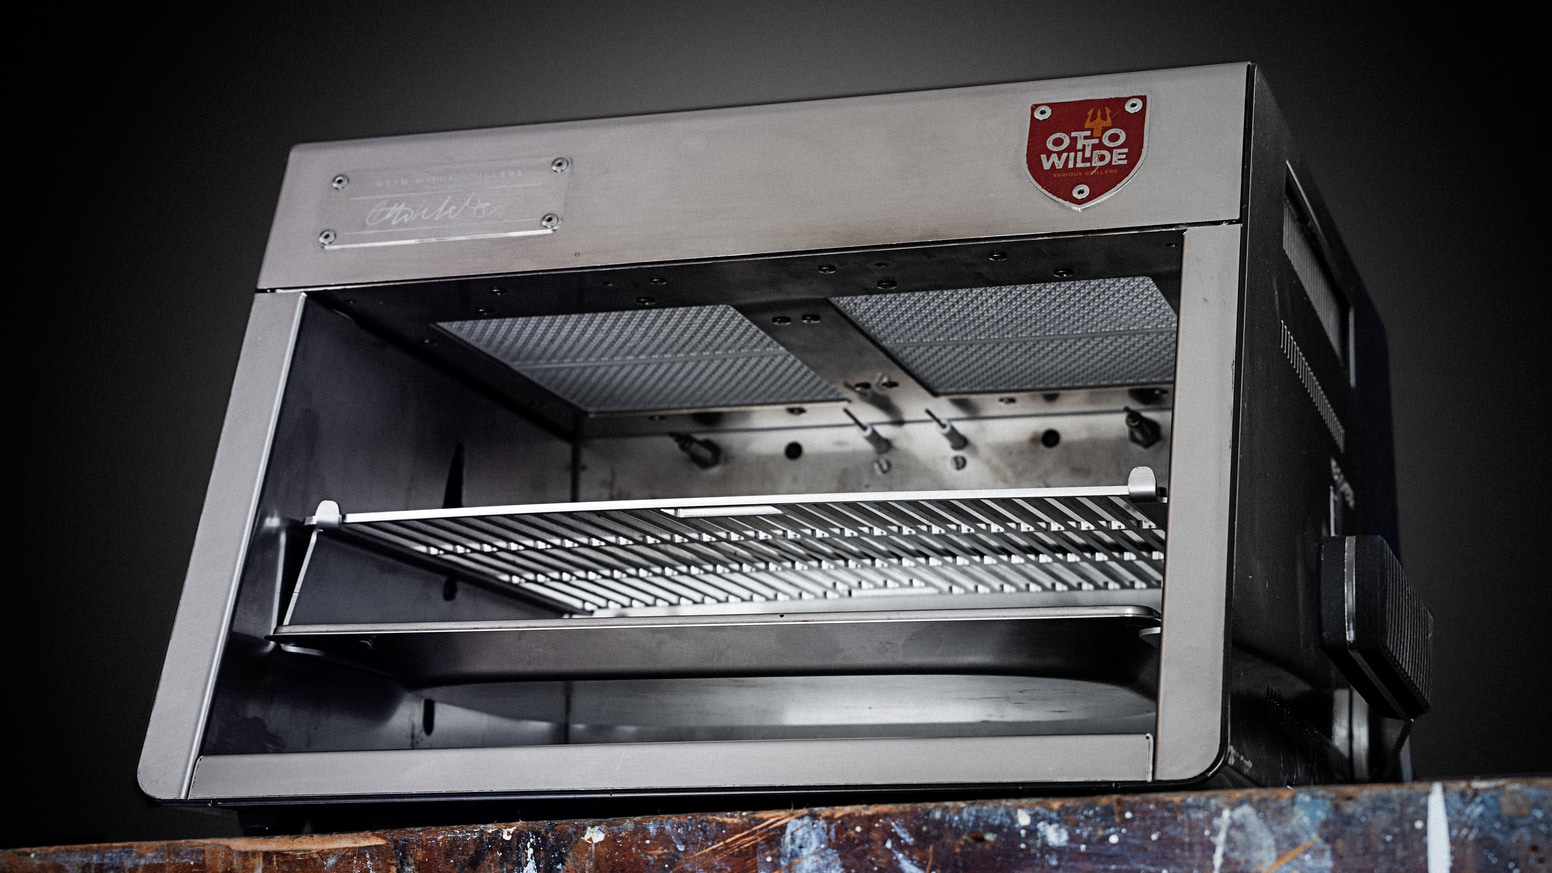 Otto's O.F.B. (over-fired broiler) gas grill brings steakhouse quality to your home through temperatures of up to 970˚C/1700˚F.